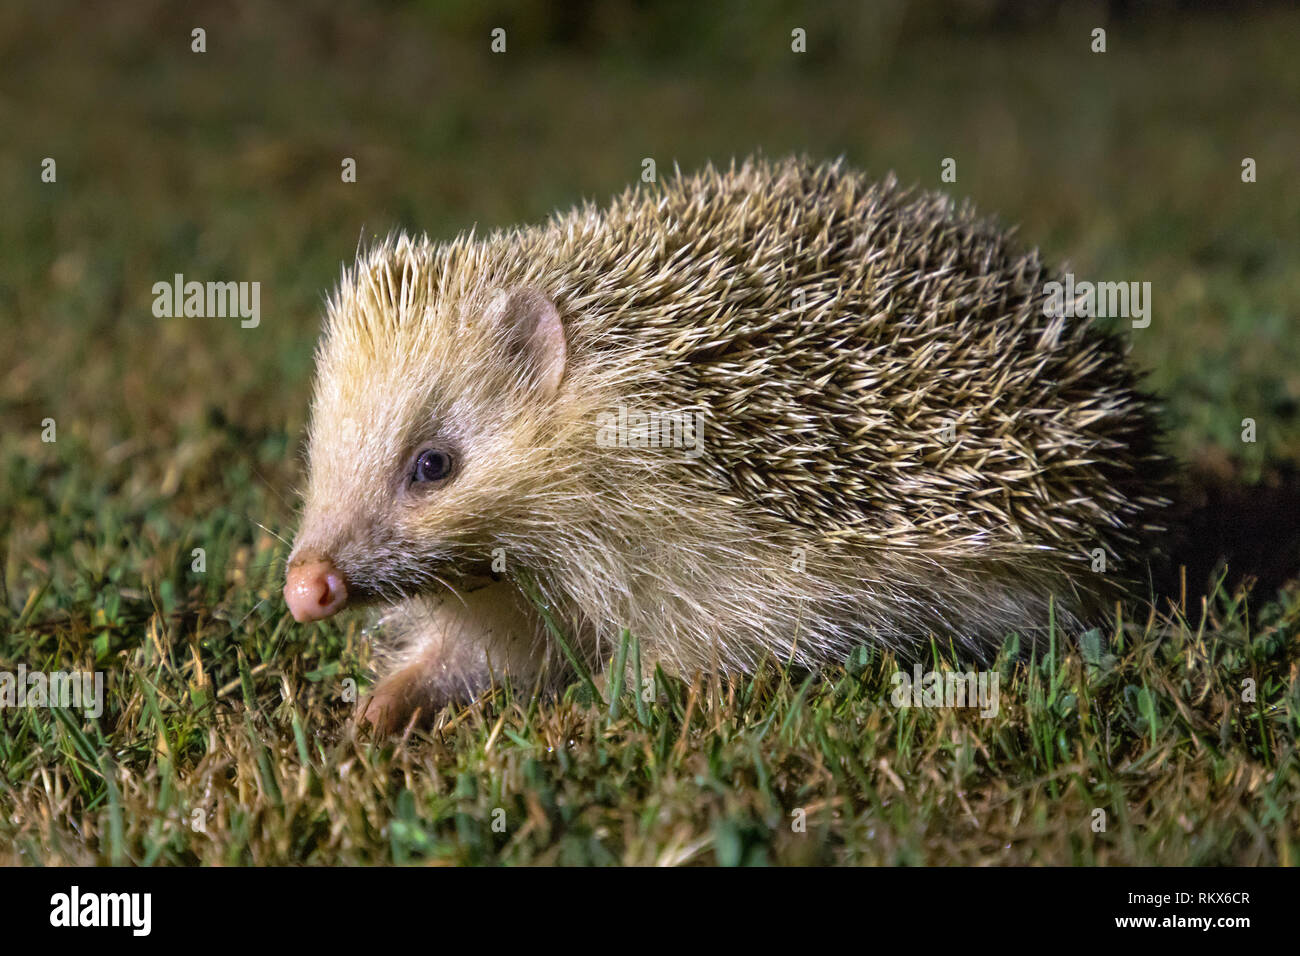 The Alderney Blonde Hedgehog, tame and approachable due to the lack of predation. - Stock Image